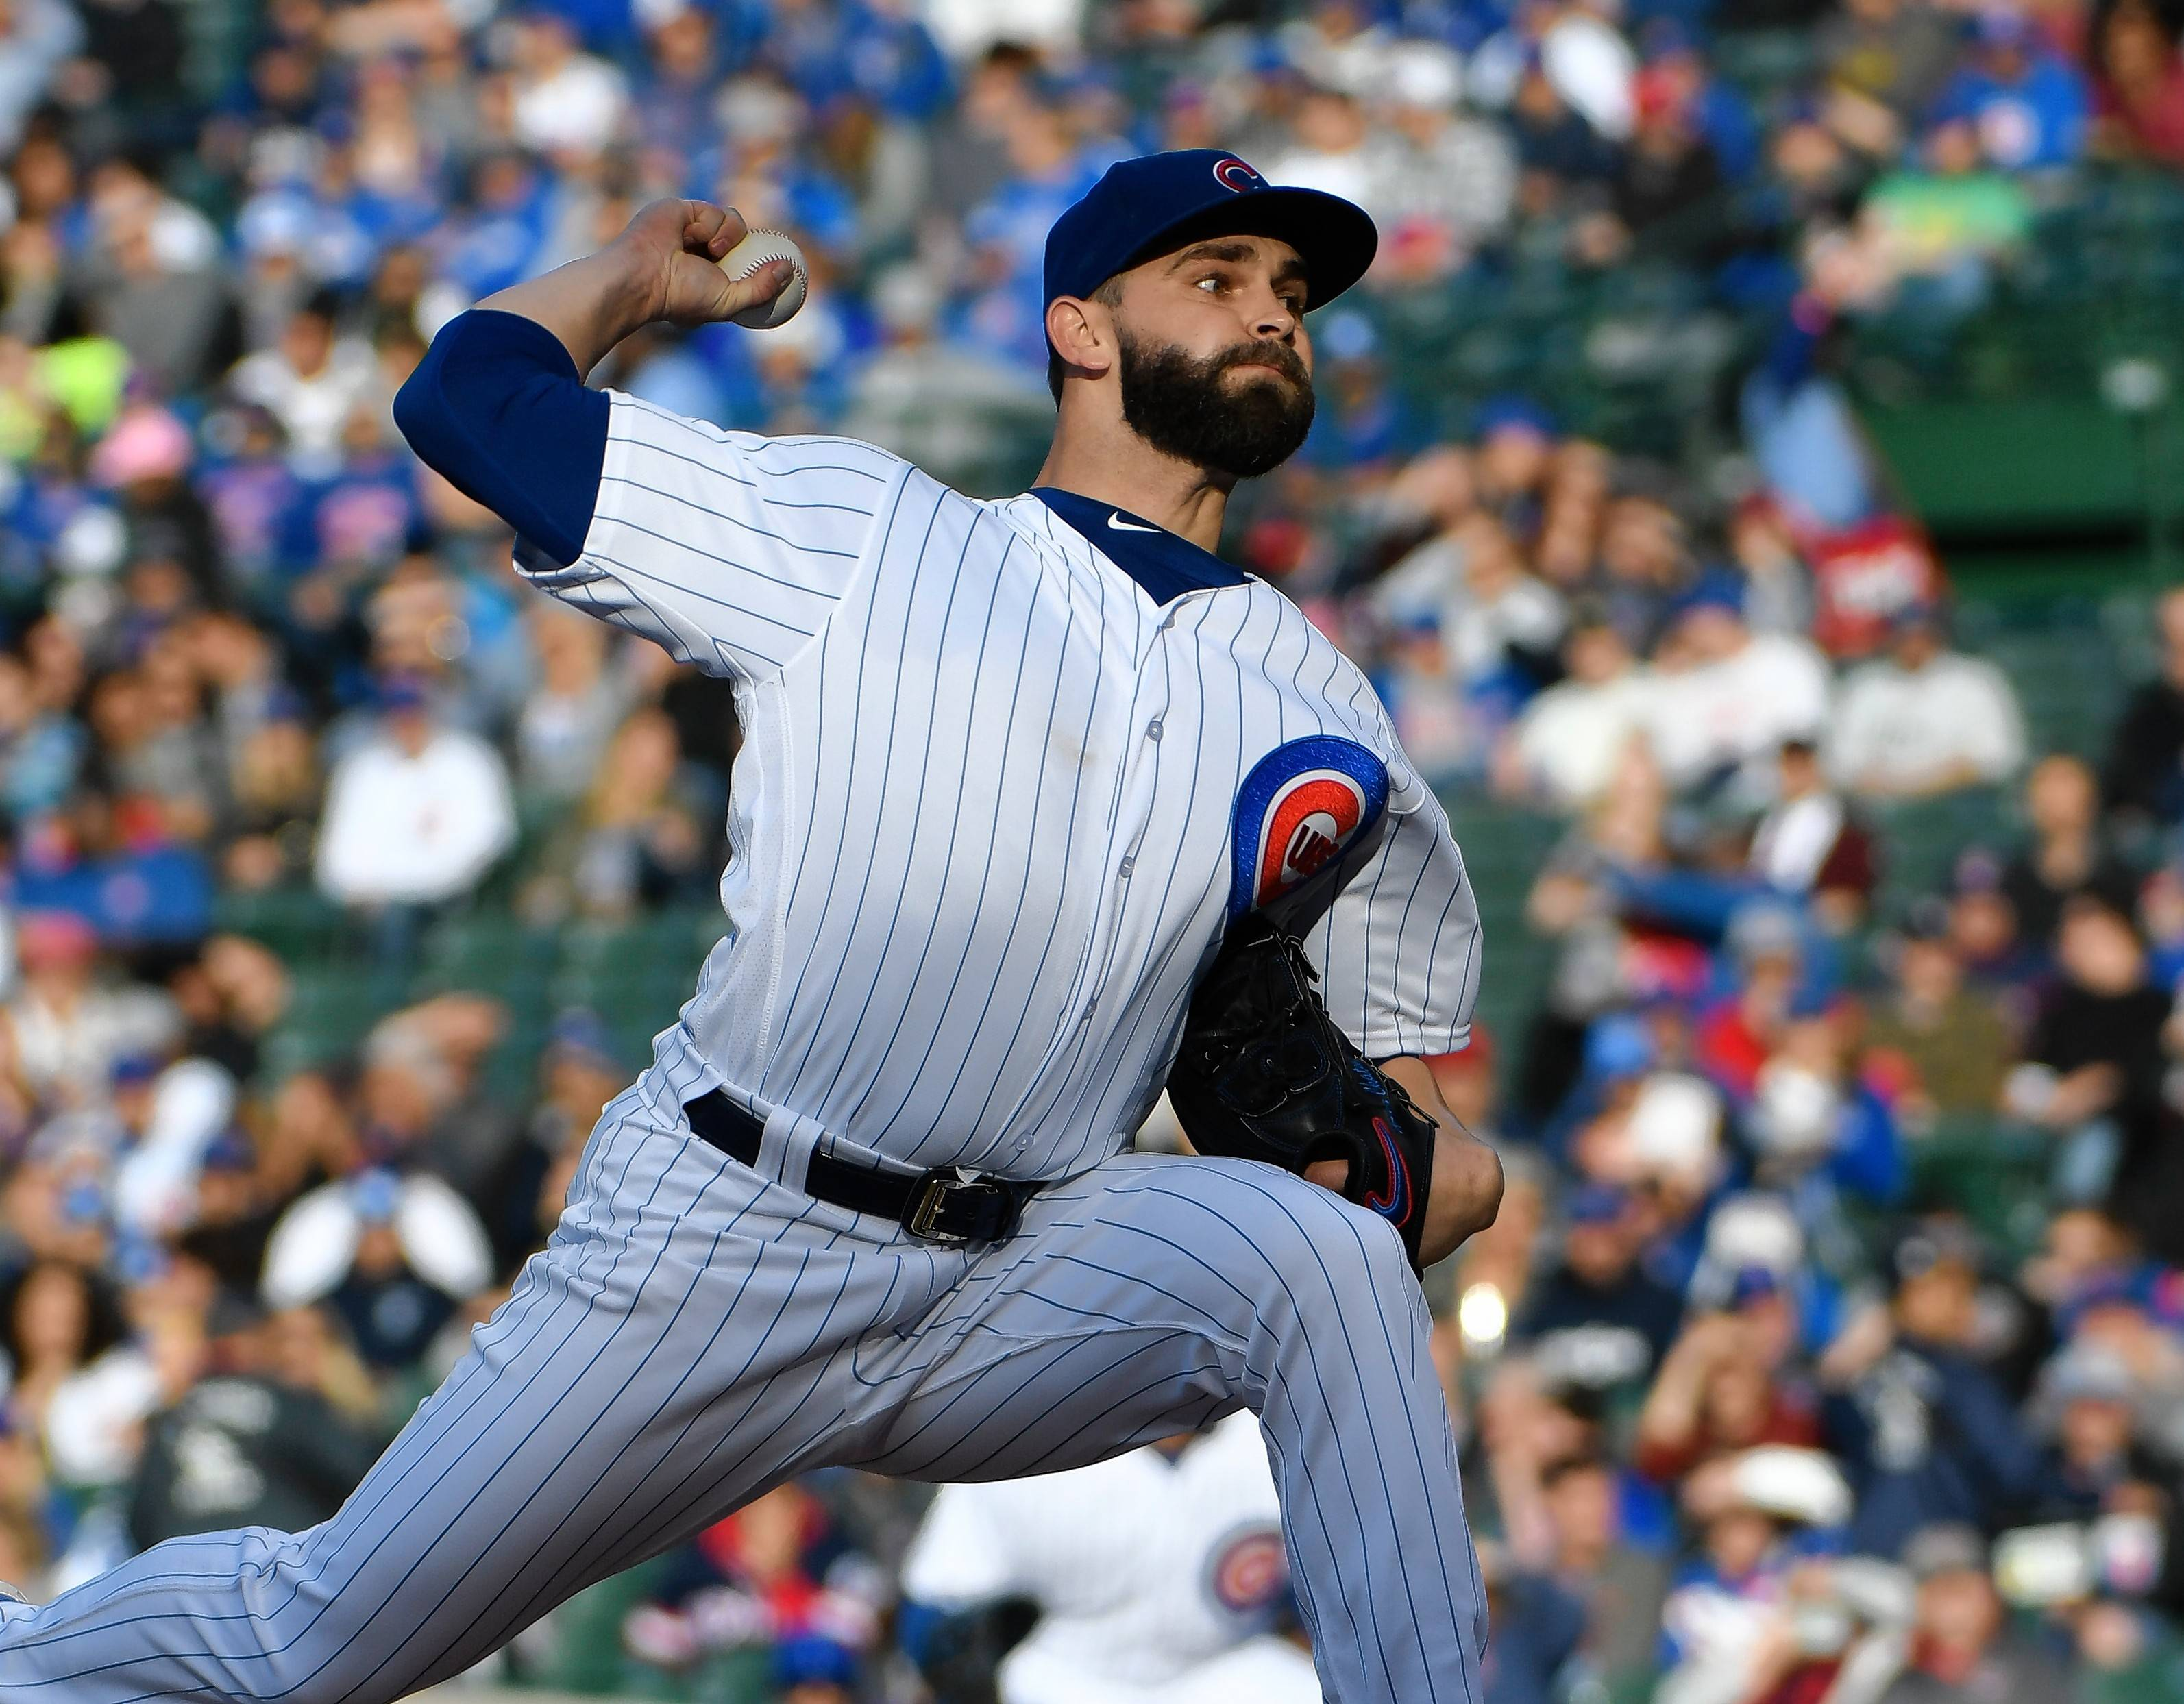 Chicago Cubs starting pitcher Tyler Chatwood (21) throws the ball against the Cleveland Indians during the first inning of an interleague baseball game, Tuesday, May 22, 2018, in Chicago.